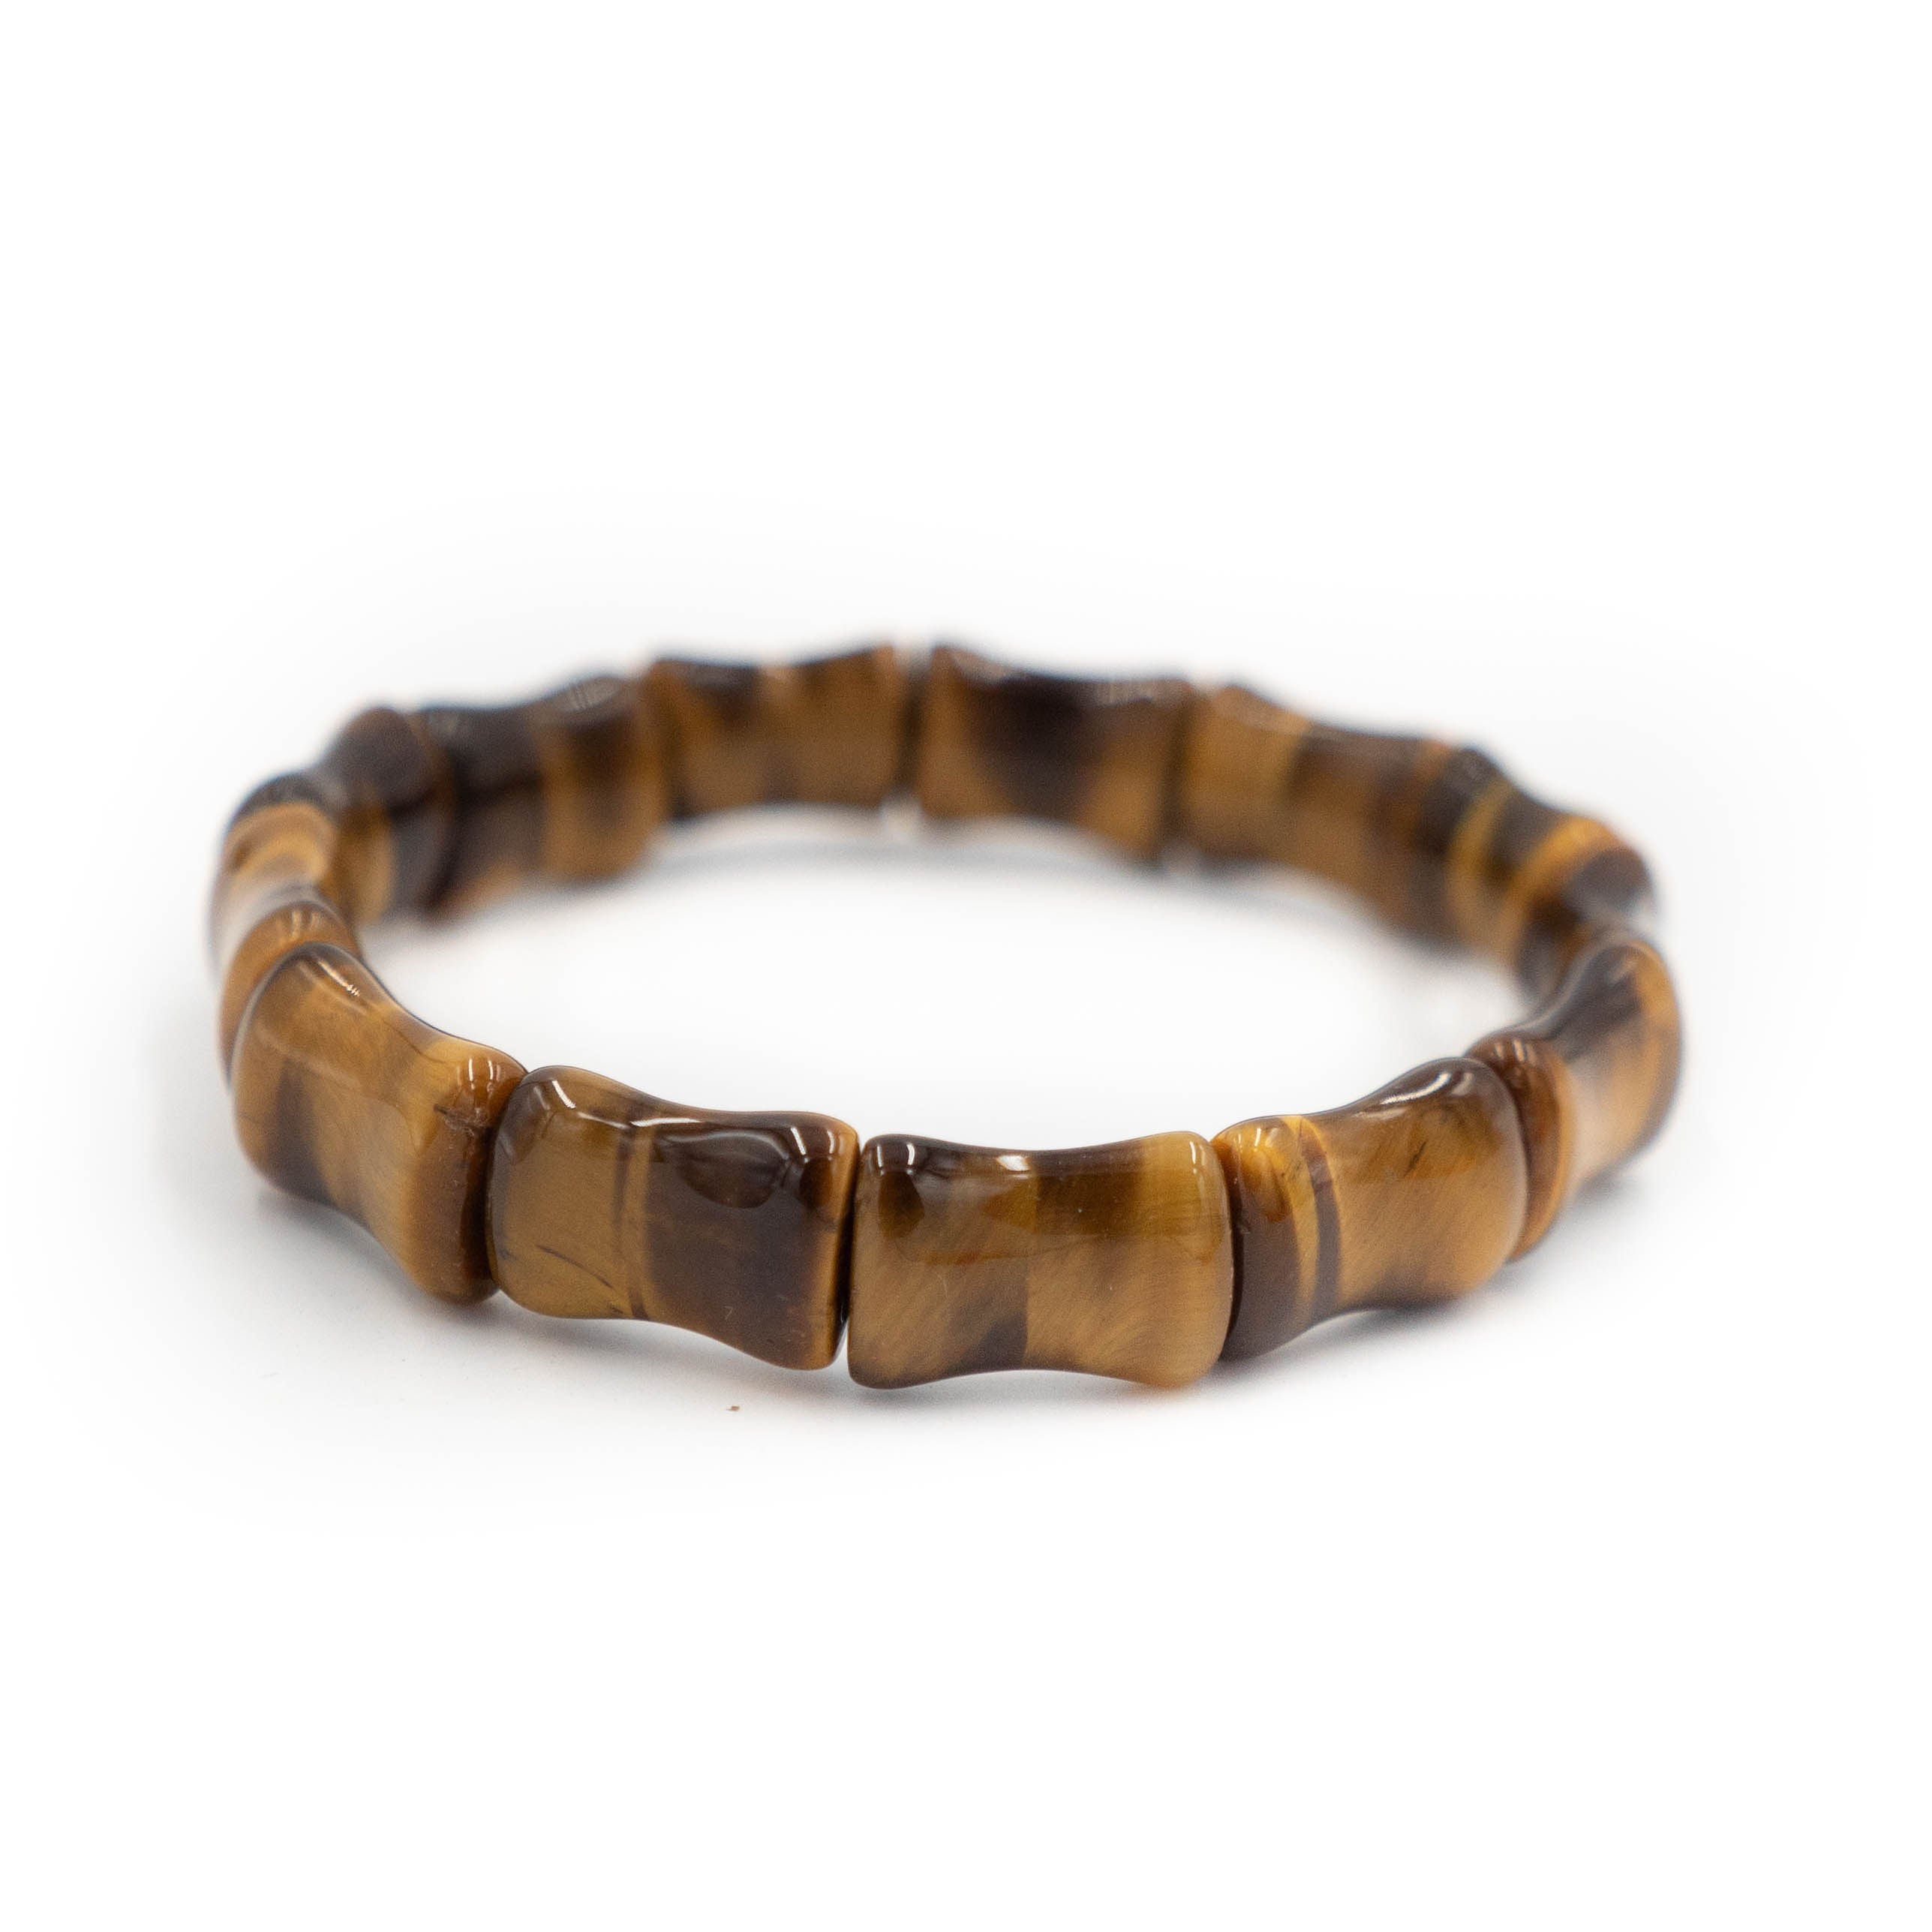 Bamboo Beach Bangle, Tiger Eye